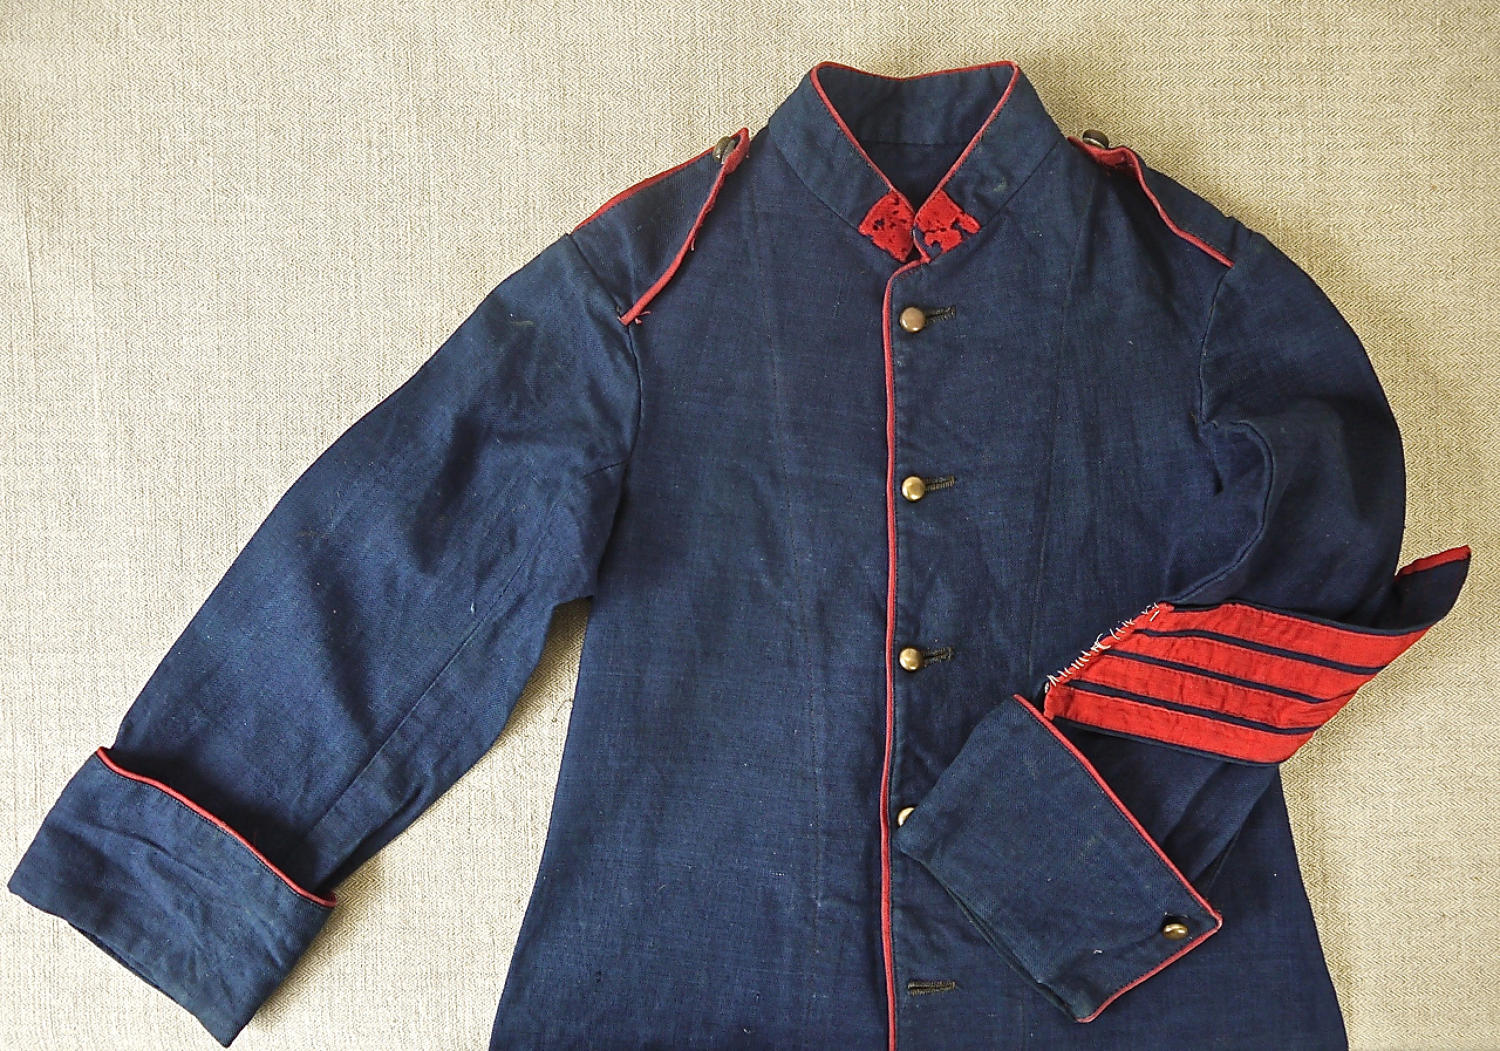 Late 19th century French childs pompier jacket